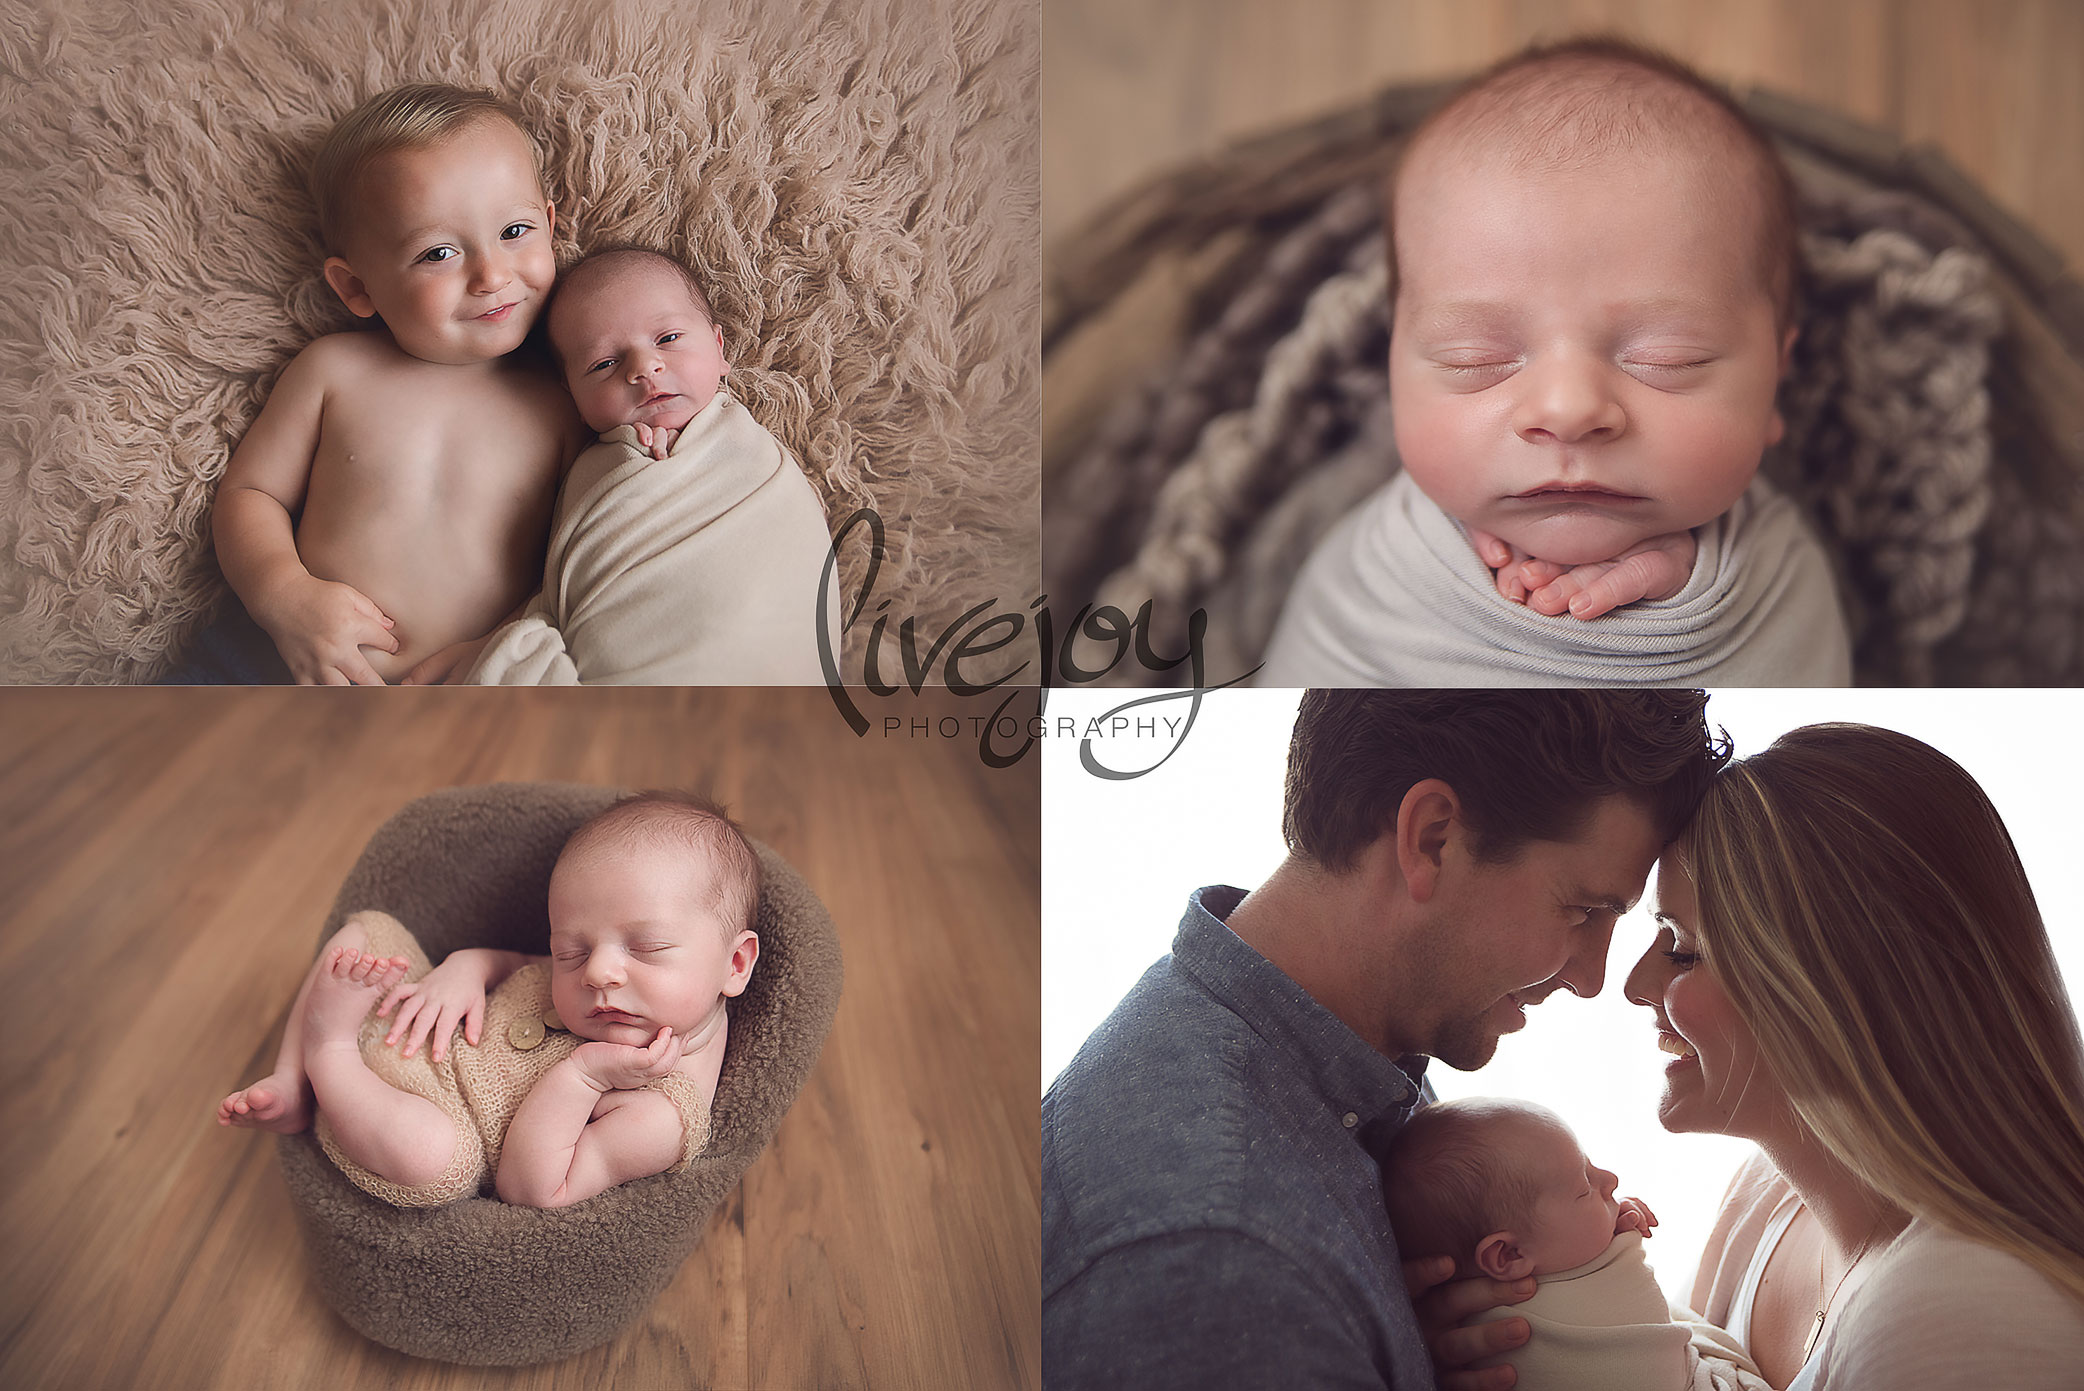 Newborn Baby Photography - Oregon | LiveJoy Photography